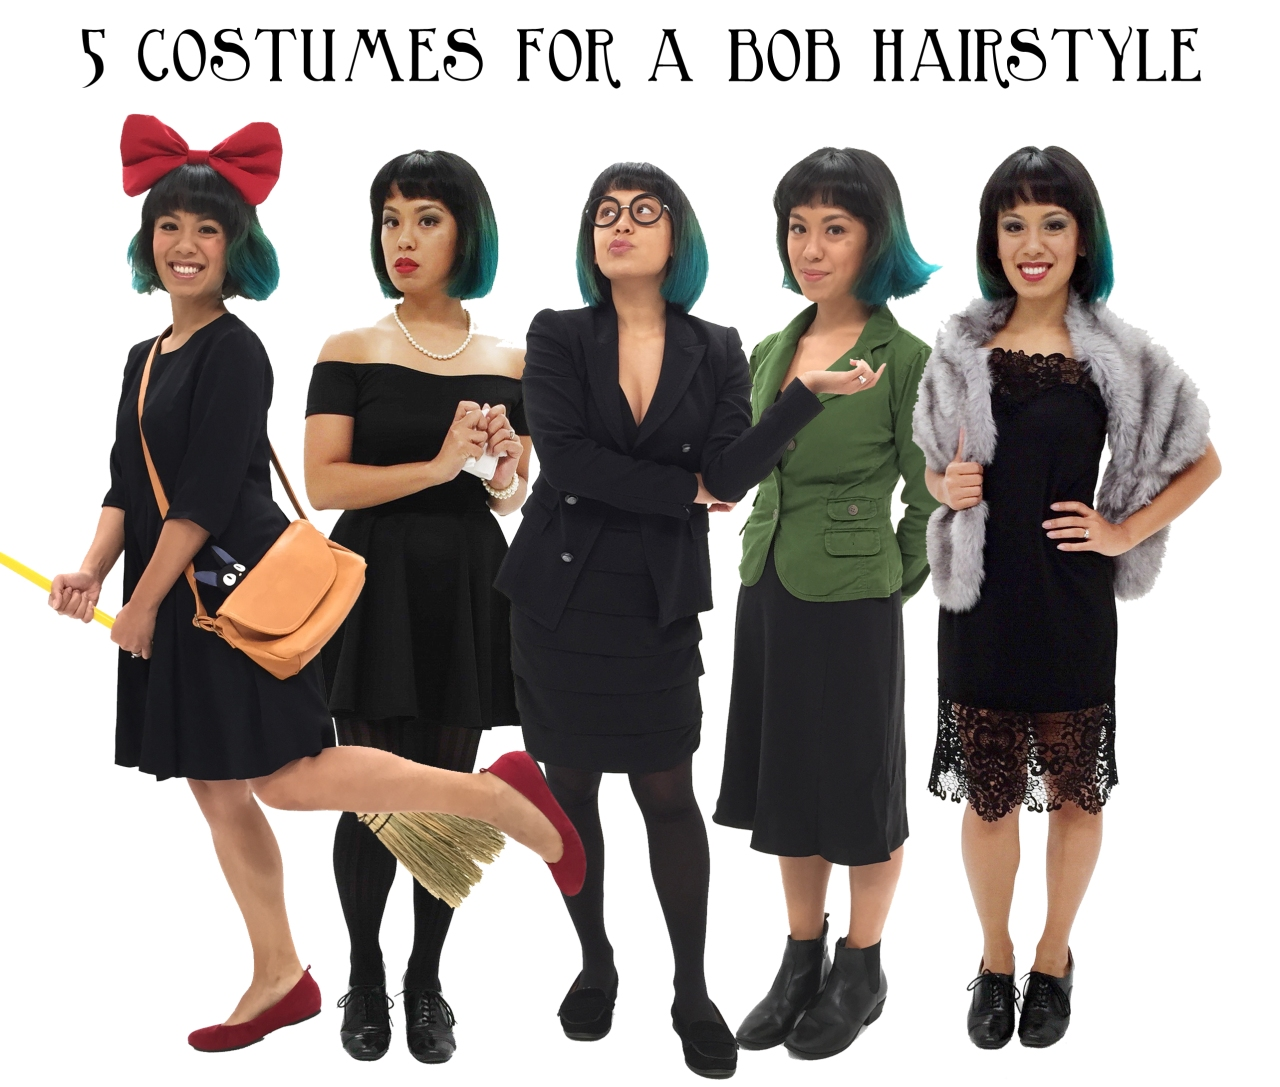 5 costumes for a bob hairstyle